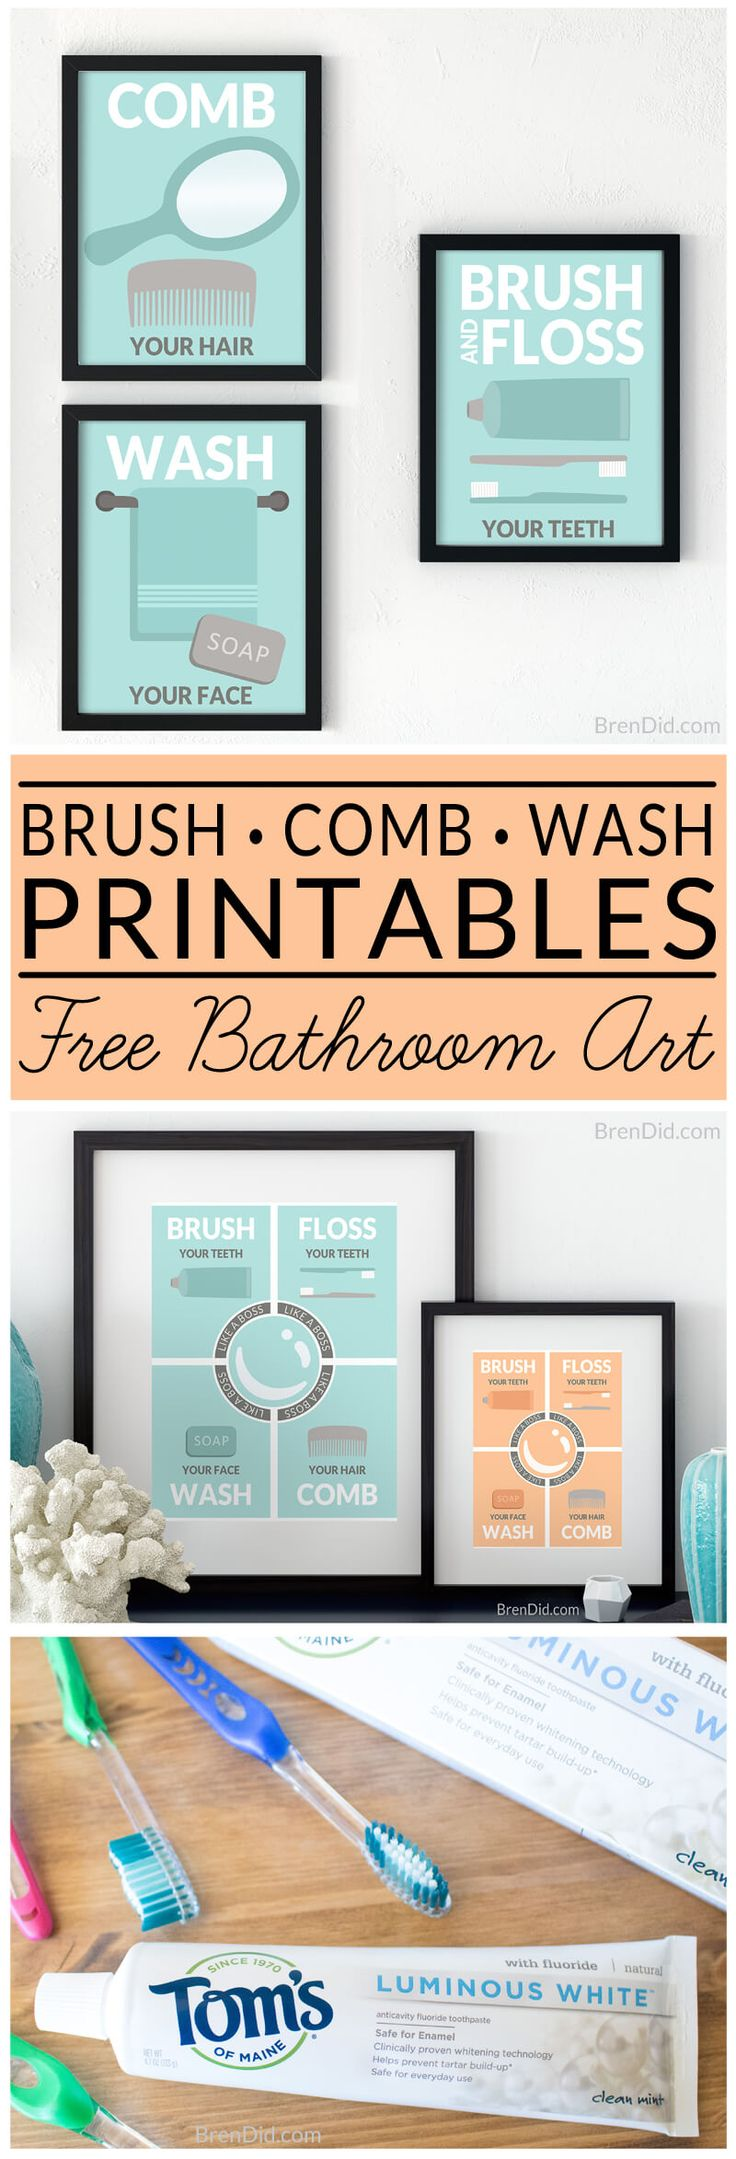 best 25+ bathroom printable ideas on pinterest | bathroom wall art